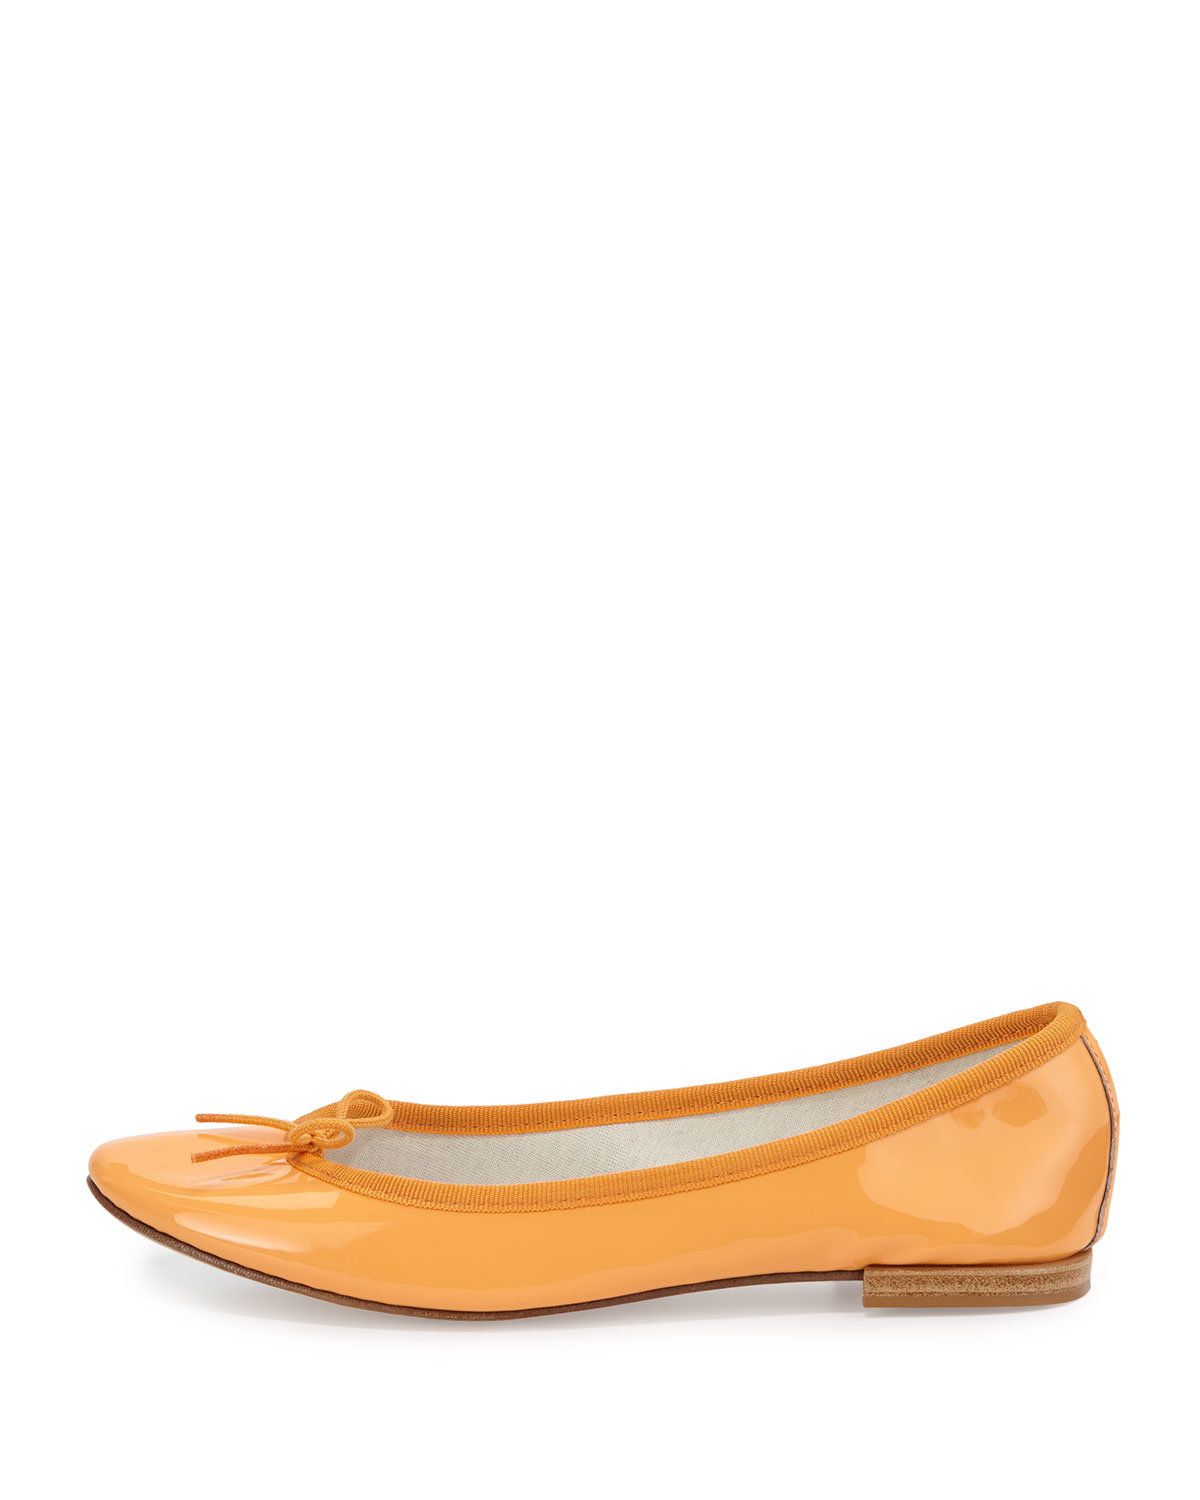 Repetto Shoes Online Canada